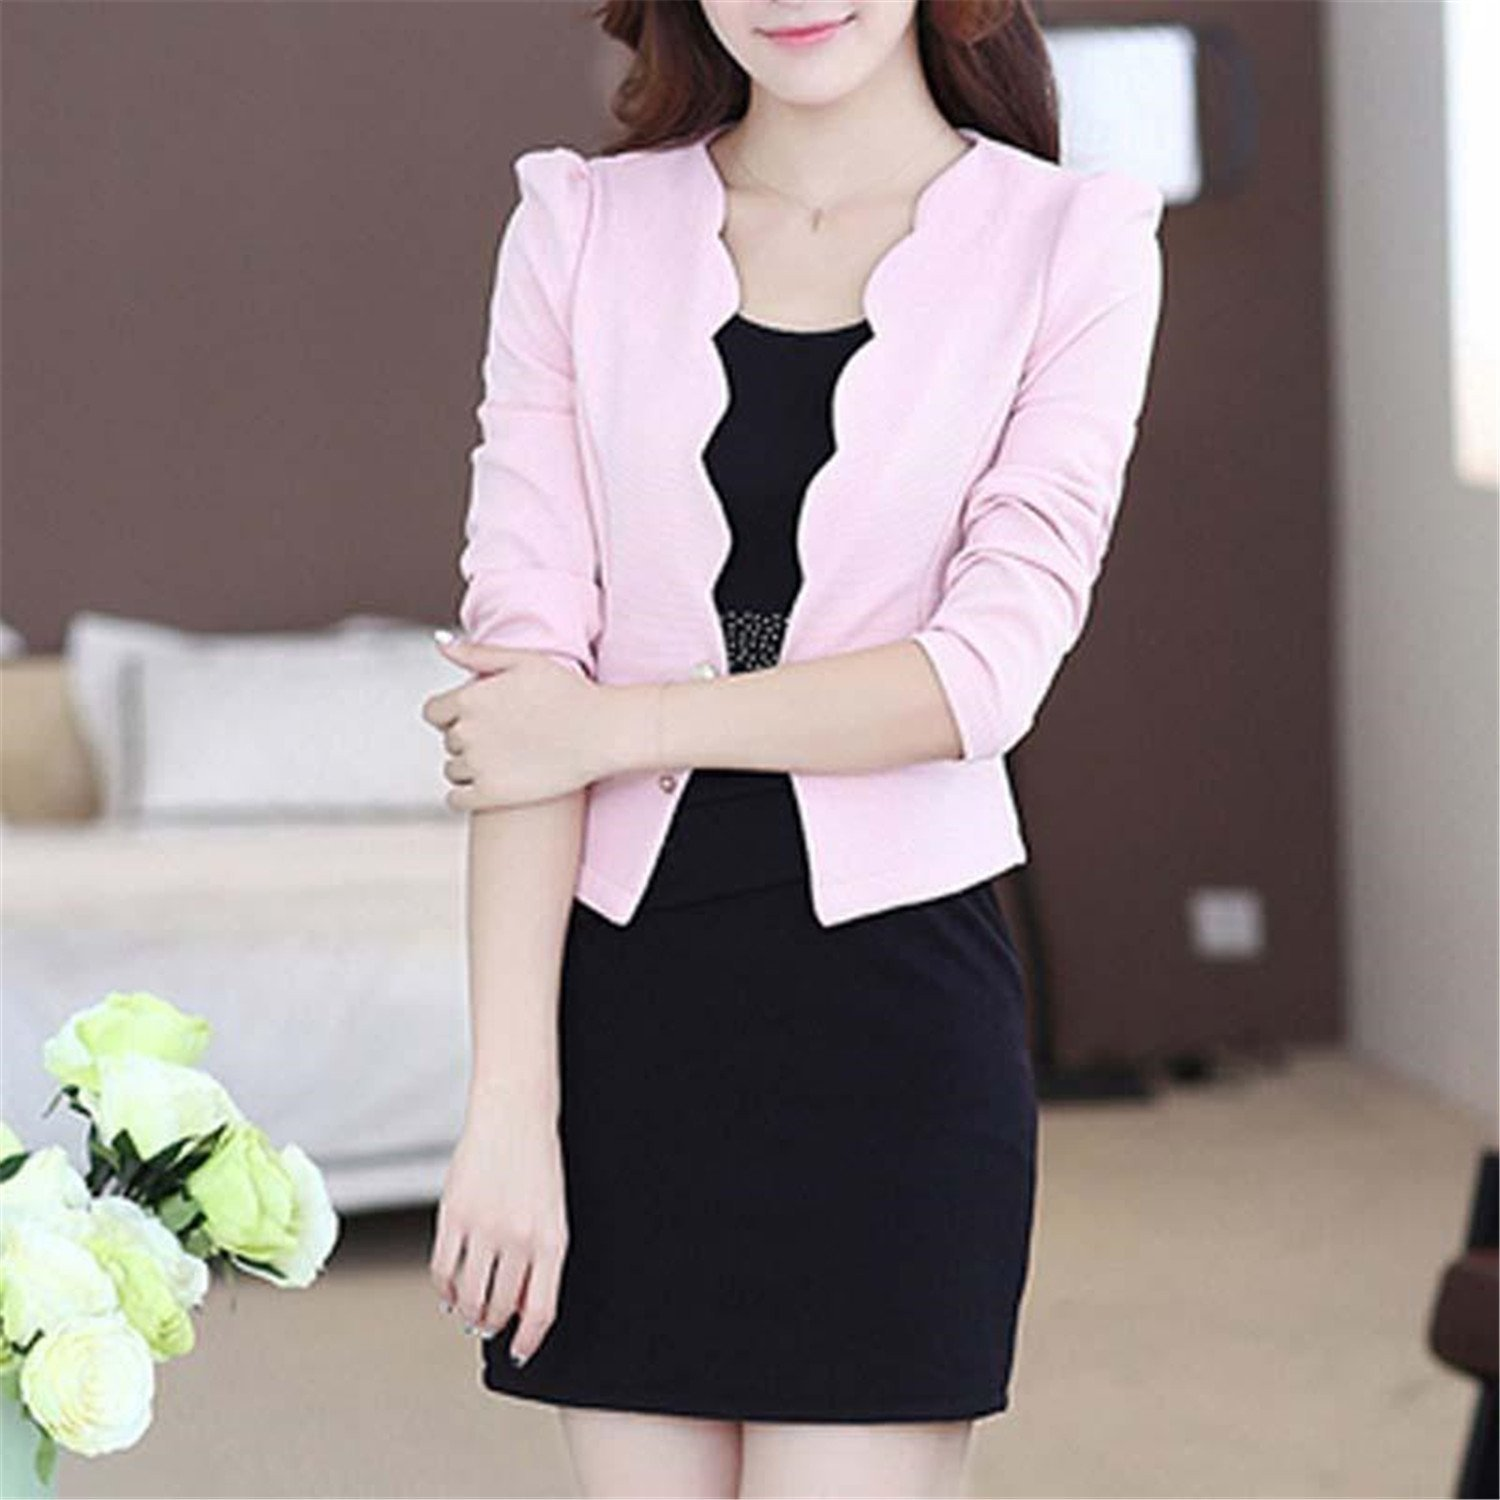 cc8604a4aeb33 B dressy Women Dresses Suits Office Women Workwear Blazer And Dress Suit  For Female PinkMedium at Amazon Women s Clothing store